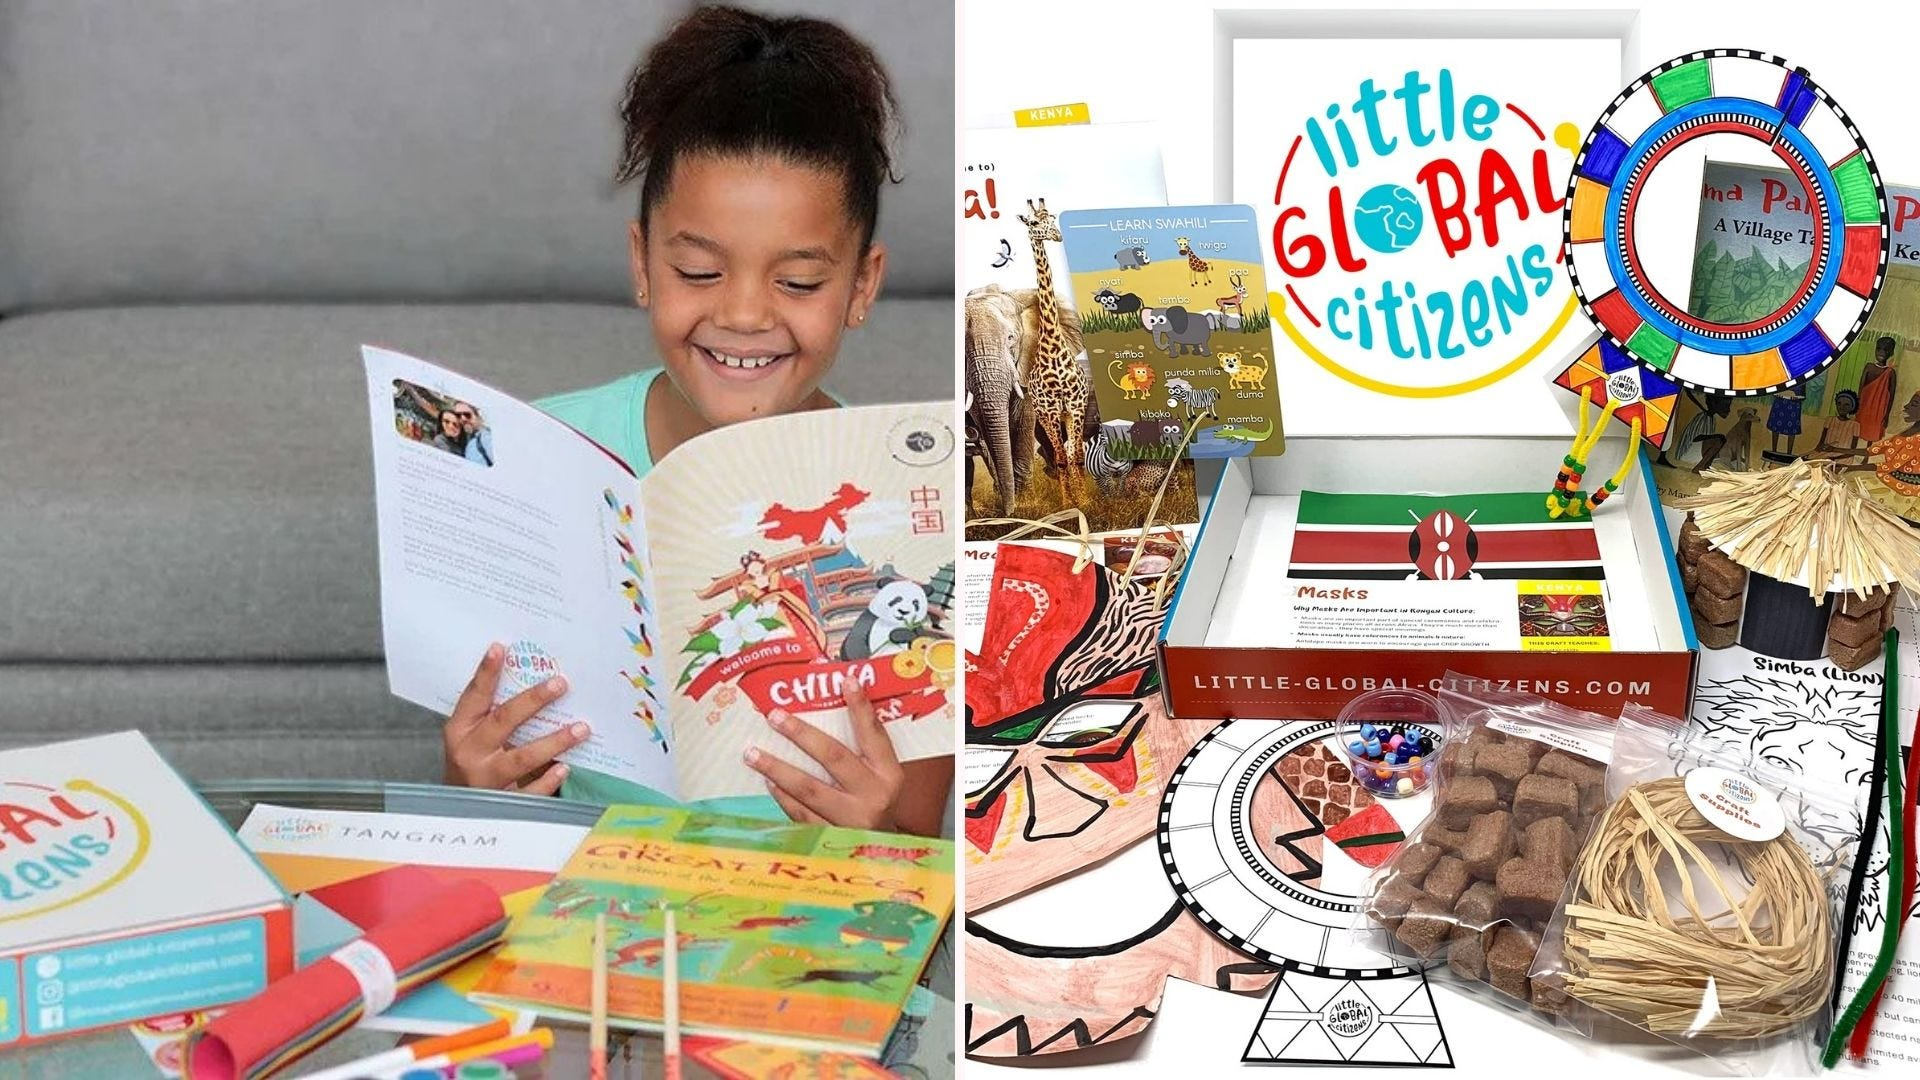 A girl reading a book; a box with miscellaneous books, crafts, and more